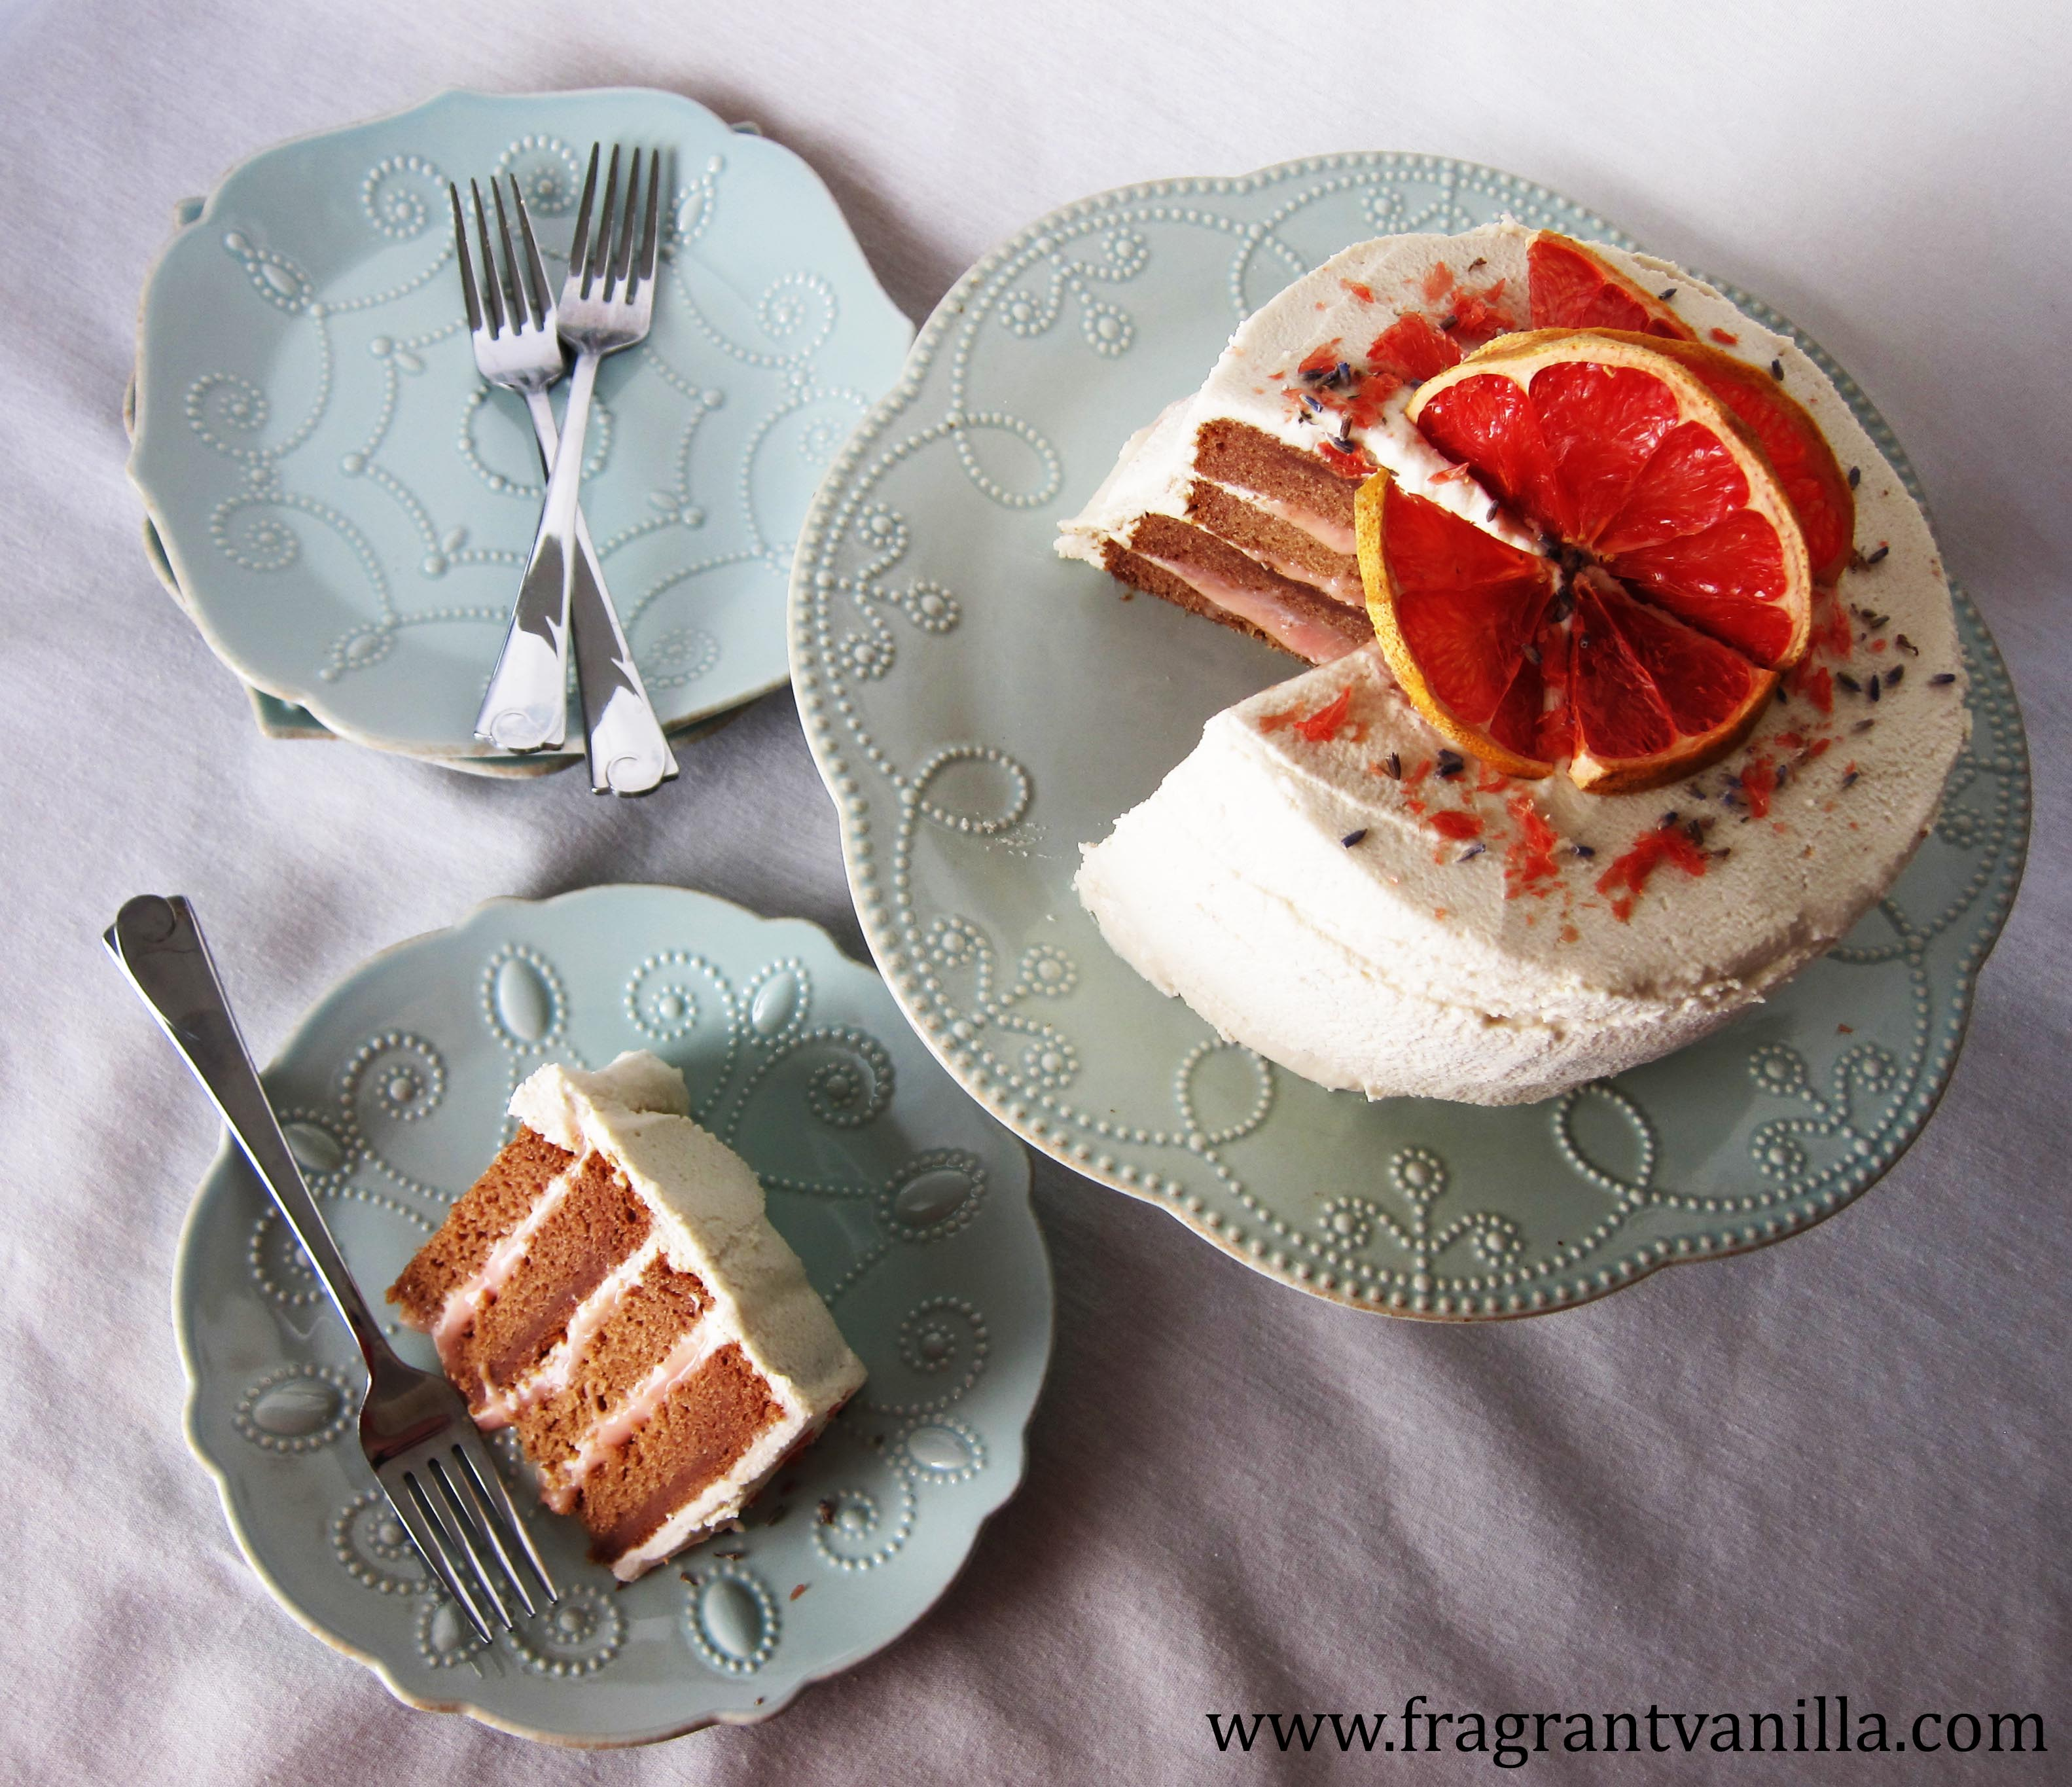 Vegan White Chocolate Grapefruit Cake